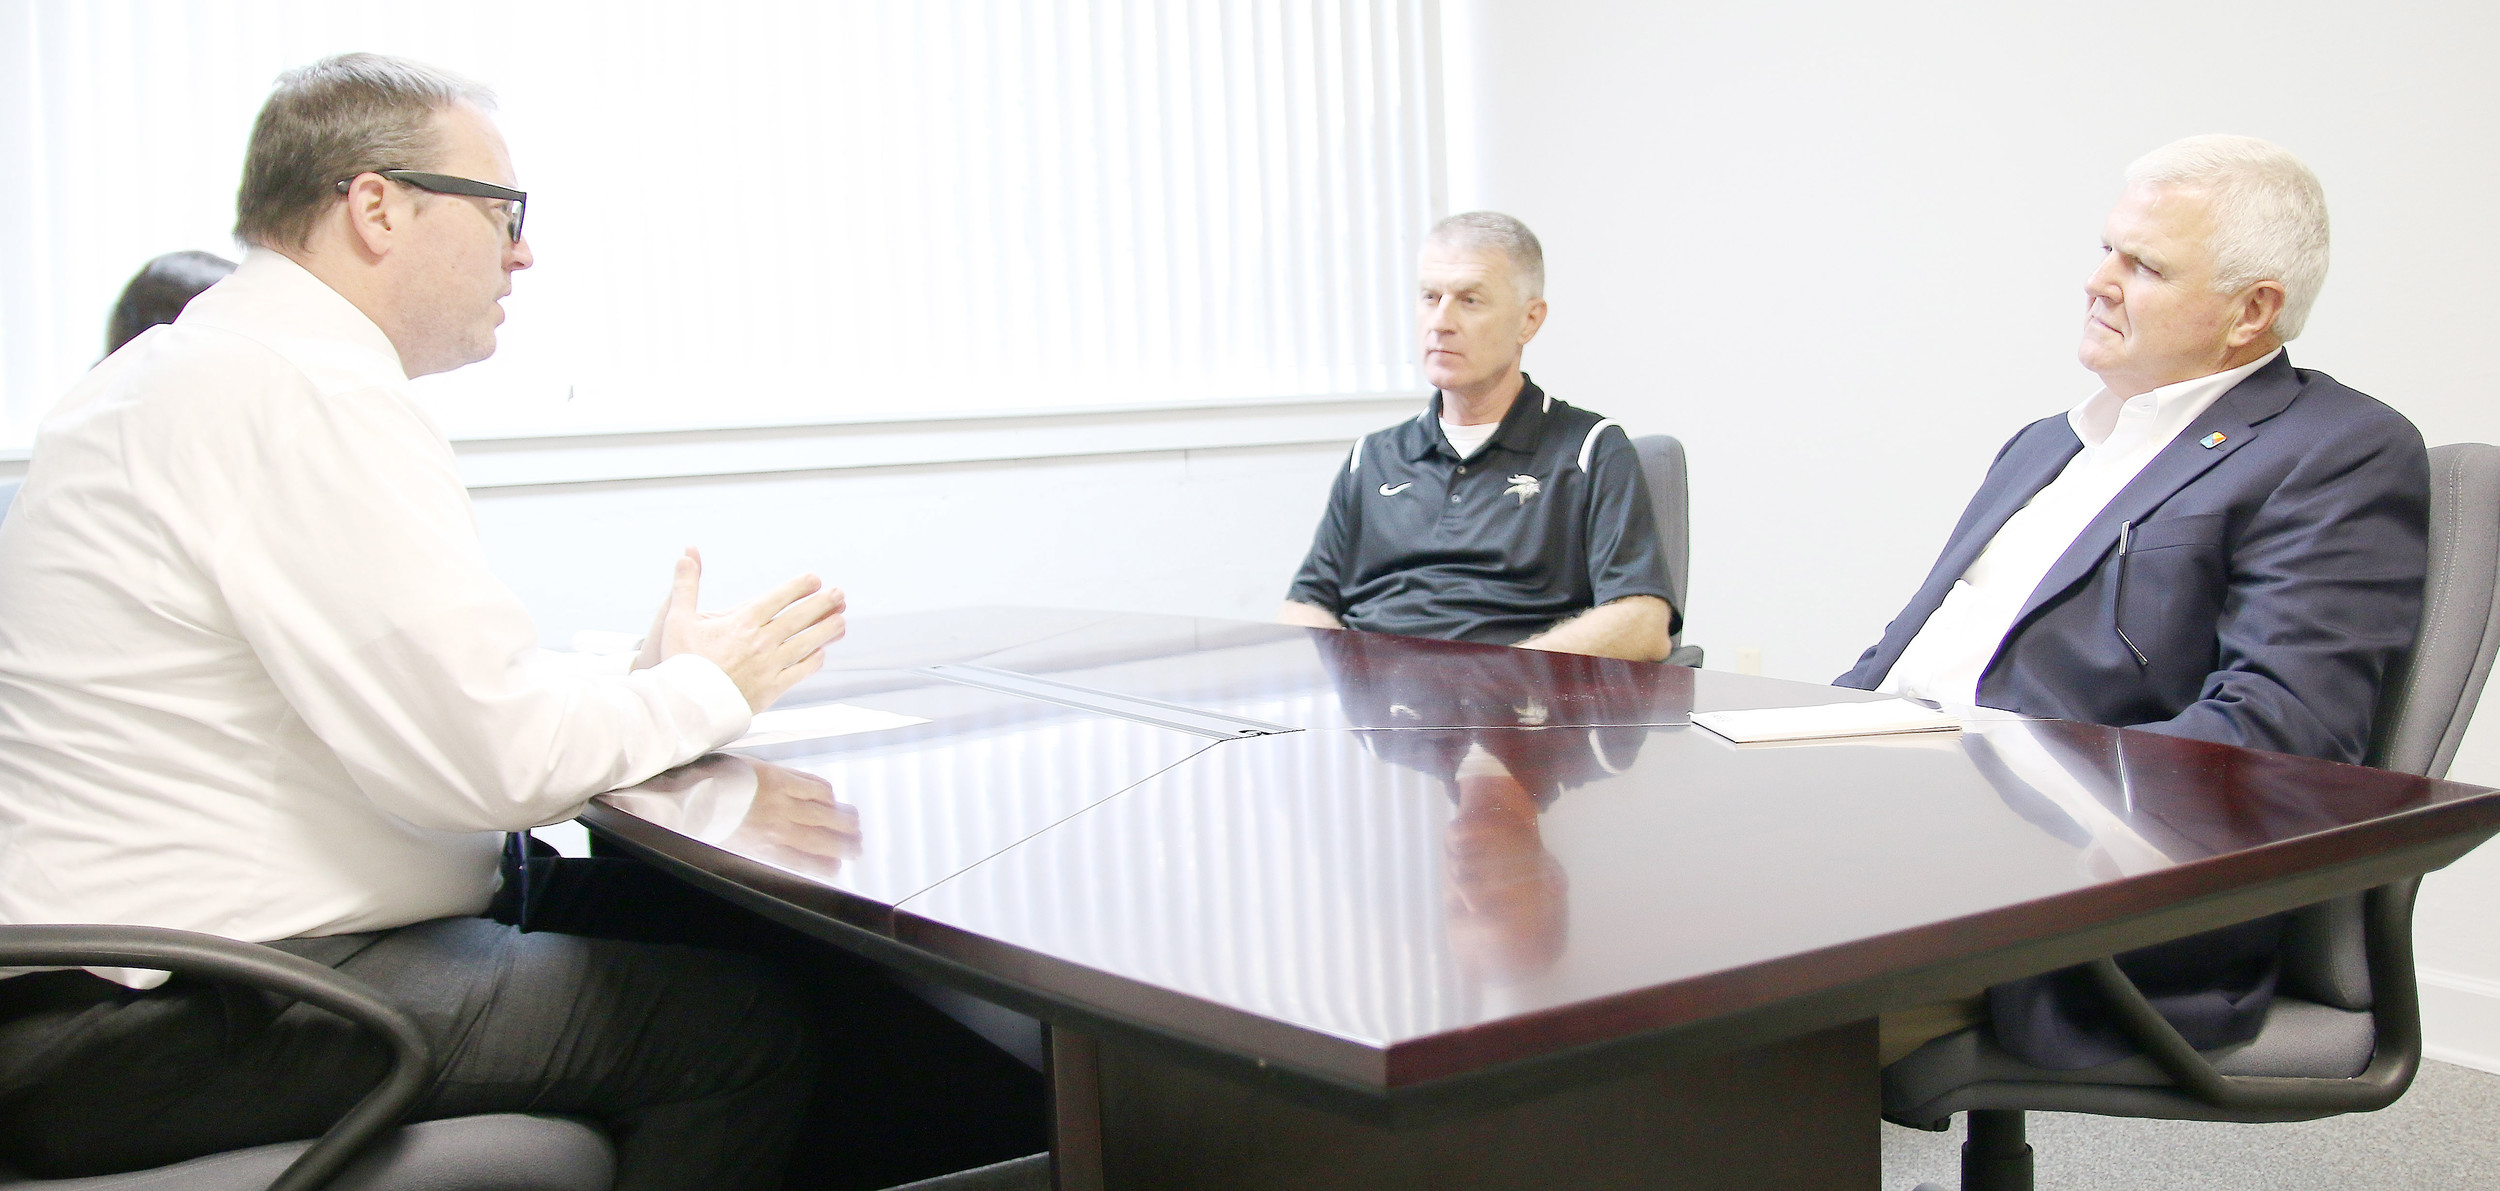 Daily Mountain Eagle publisher James Phillips, at left, sat down with Jasper mayoral candidates Greg Tinker and David O'Mary Friday for a 90-minute discussion on their plans if elected mayor. Tinker and O'Mary will face off in Tuesday's runoff election. Daily Mountain Eagle - Malarie Brakefield